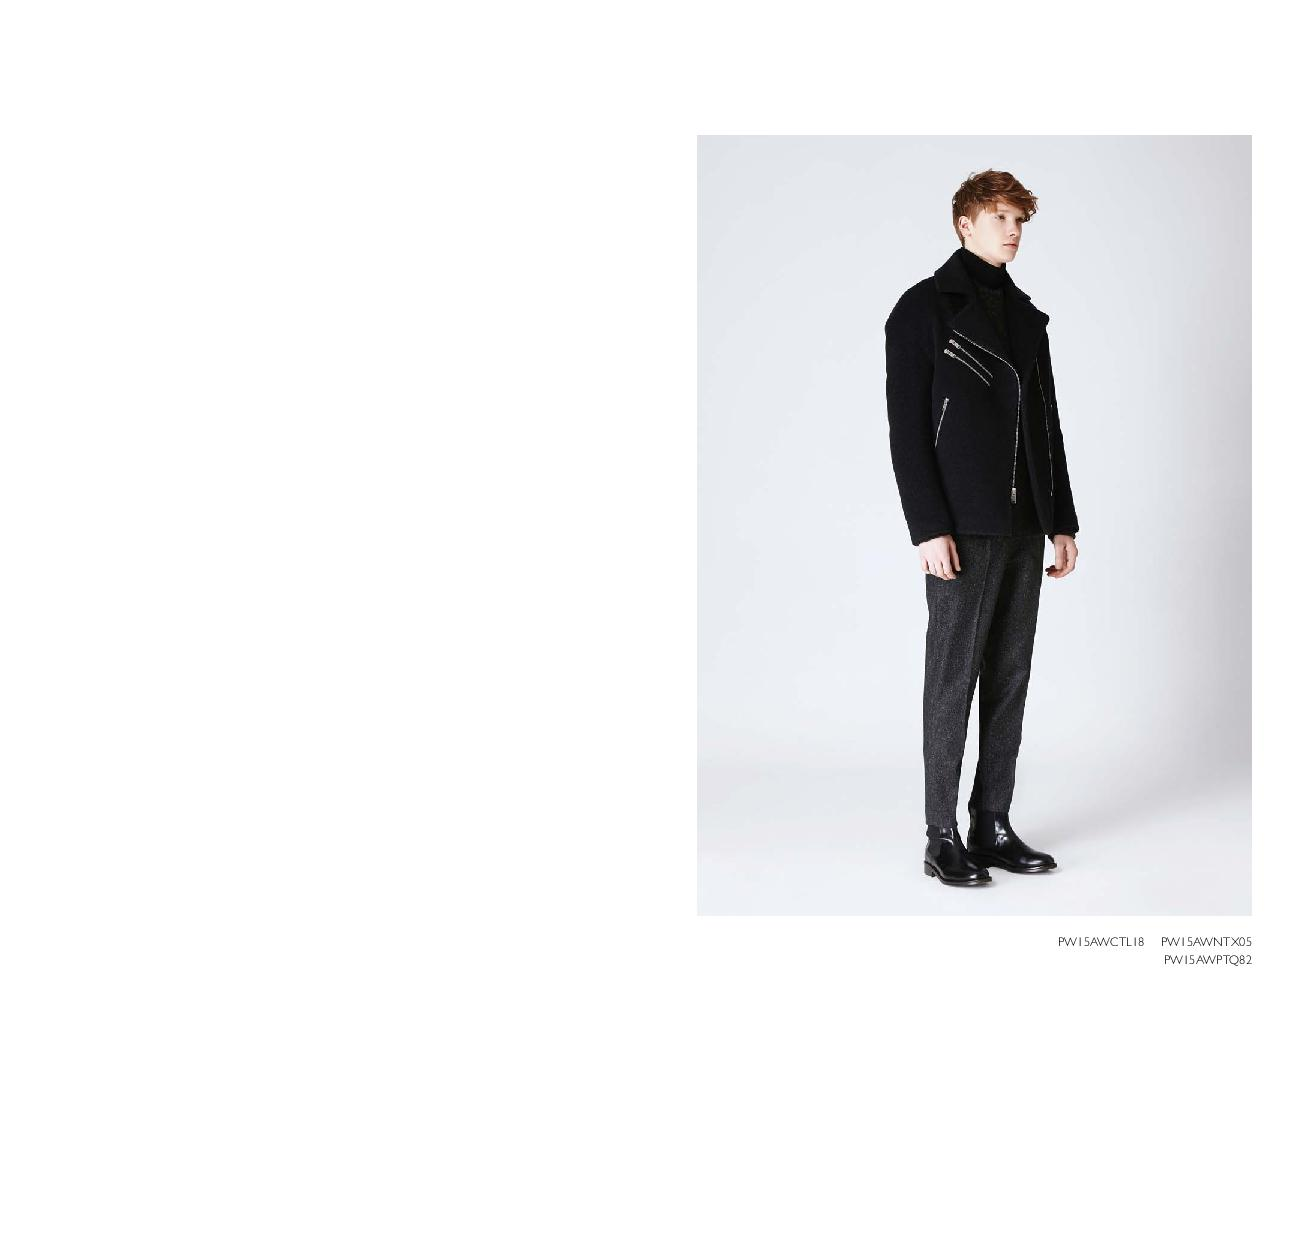 PLAC_15AW_LOOKBOOK (4)-page-019